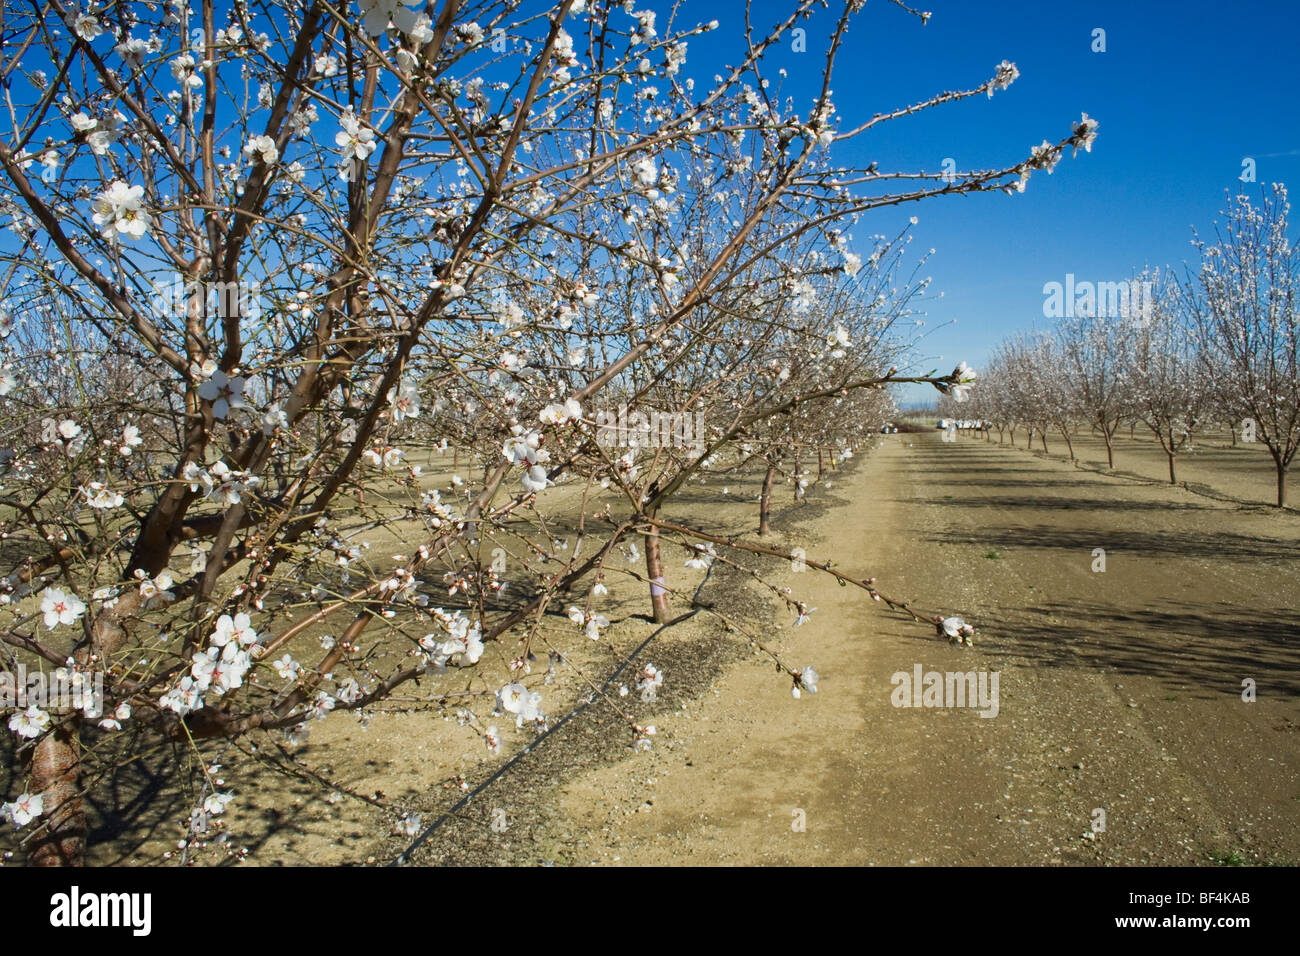 Almon orchard being used in a minimal pruning research project conducted by the University of California / California, - Stock Image